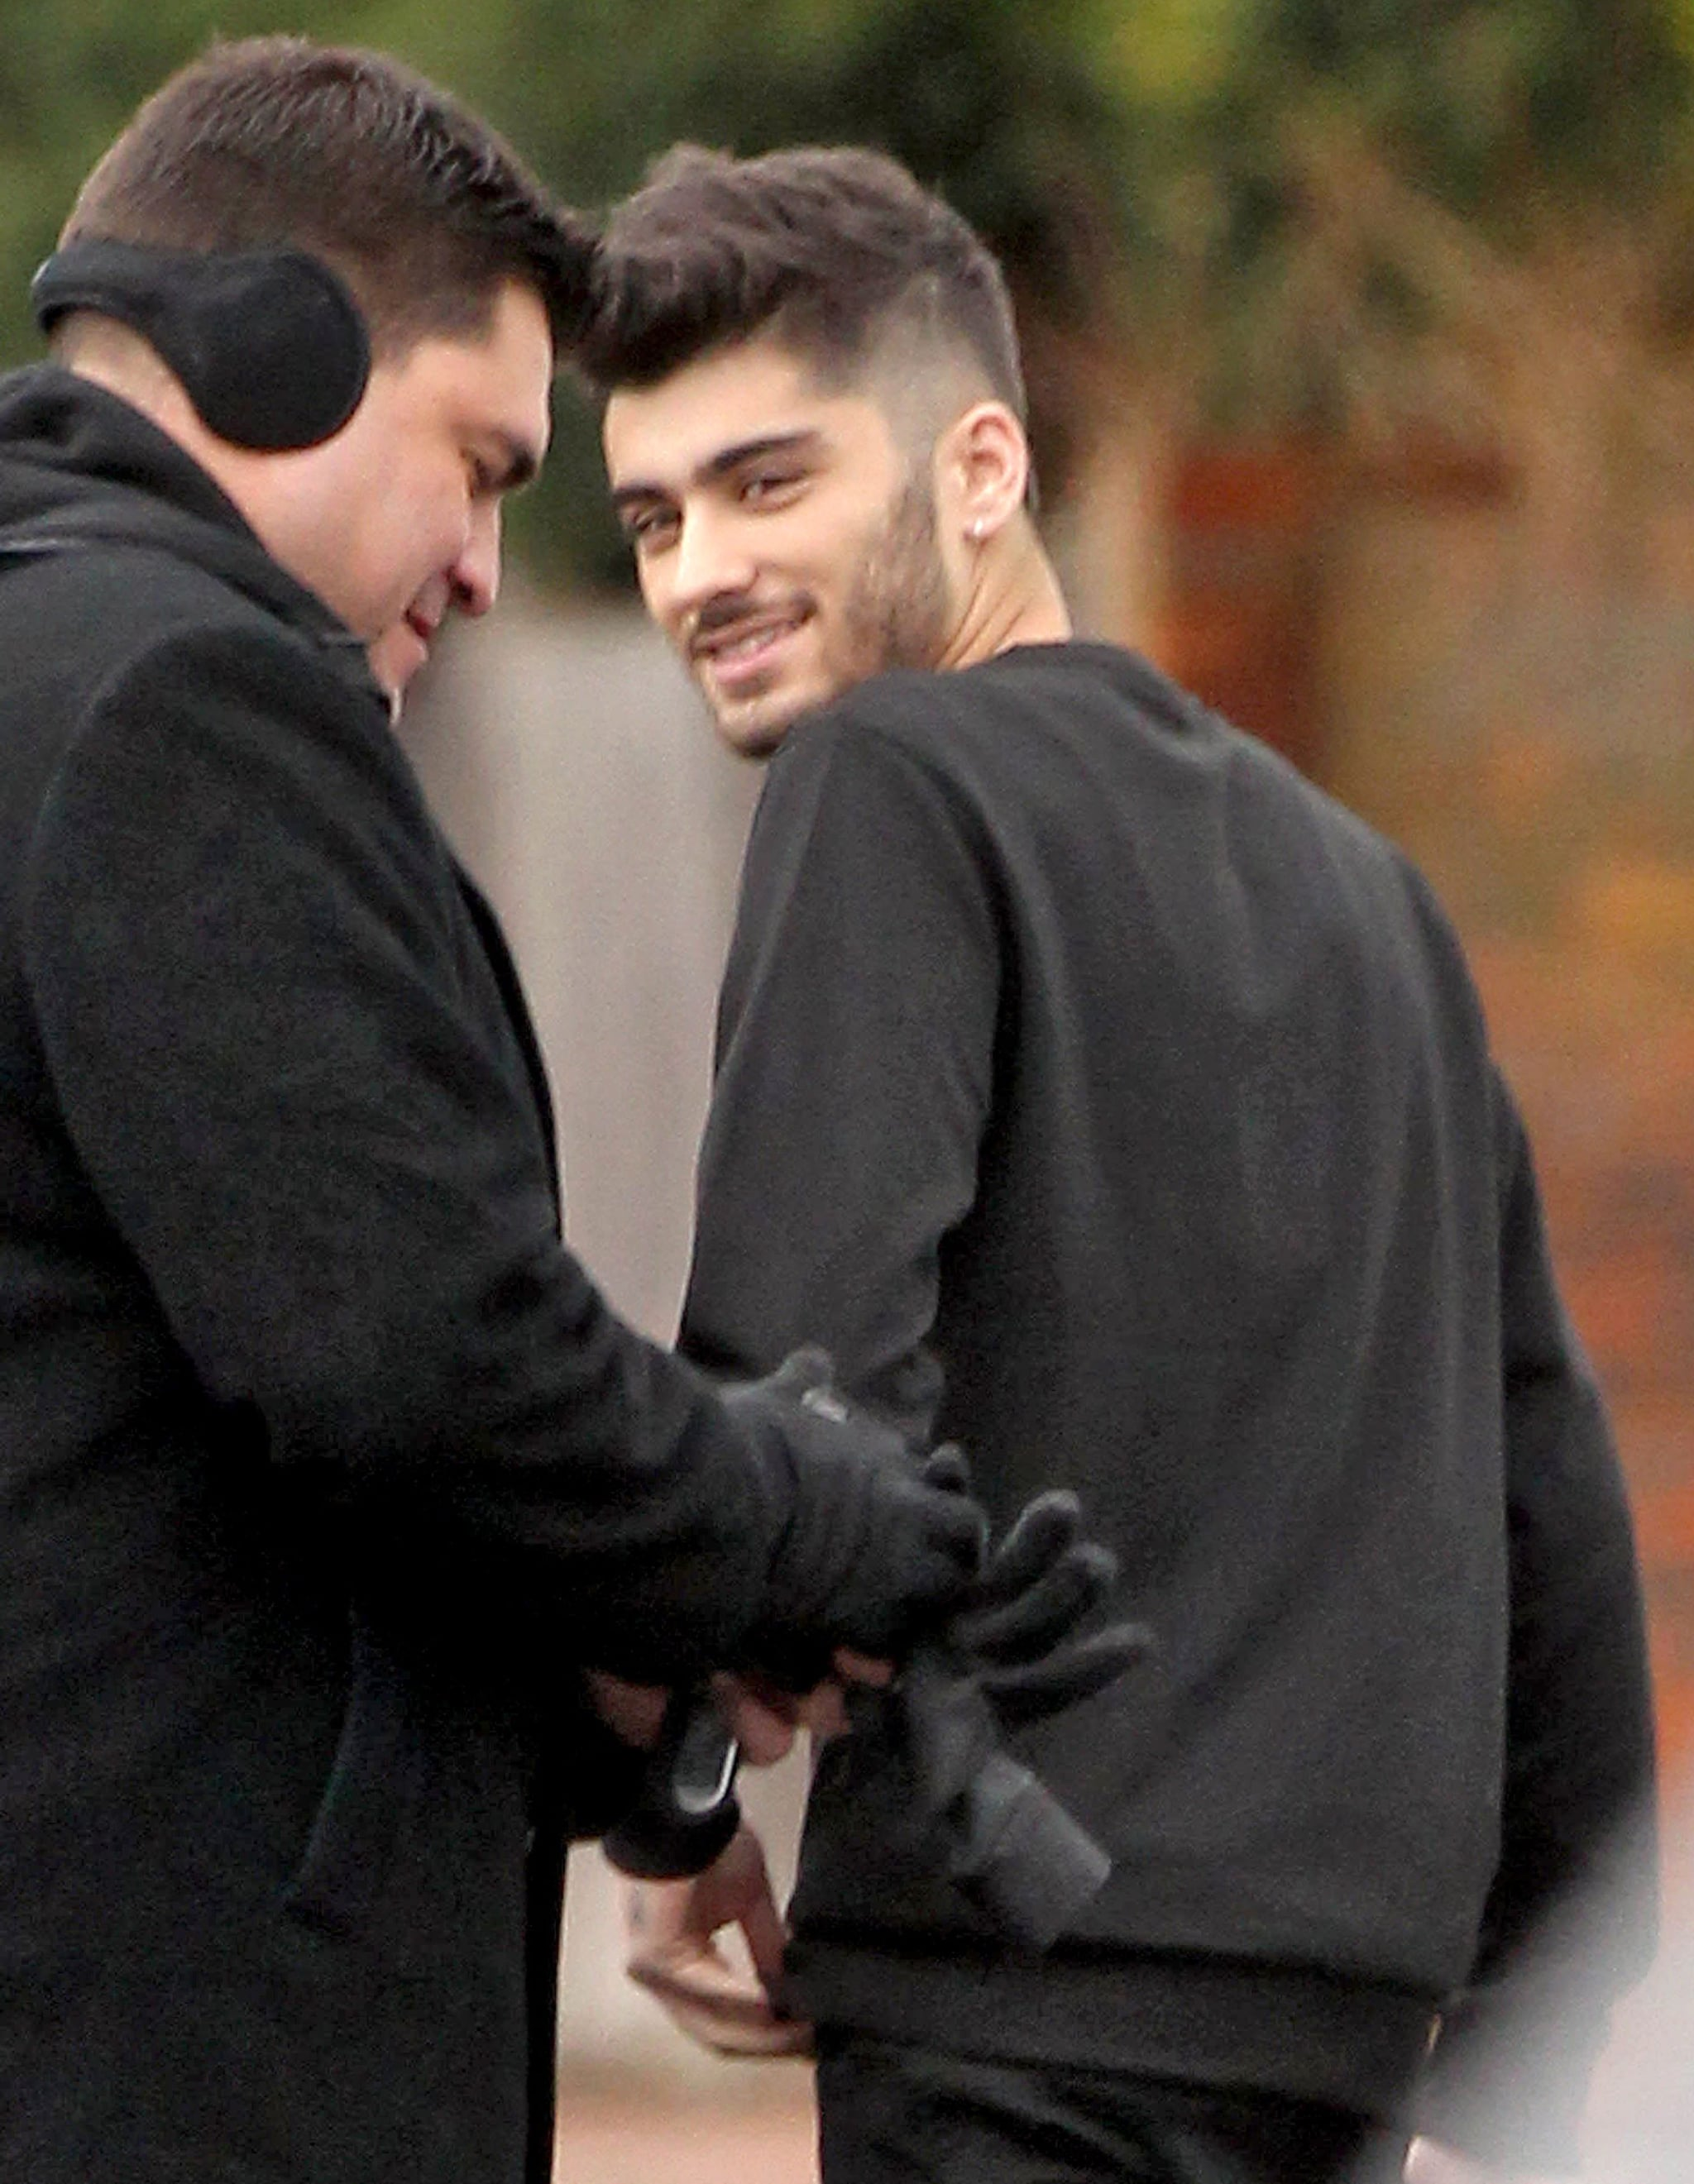 Zayn gave a smirk during the outing with his band.